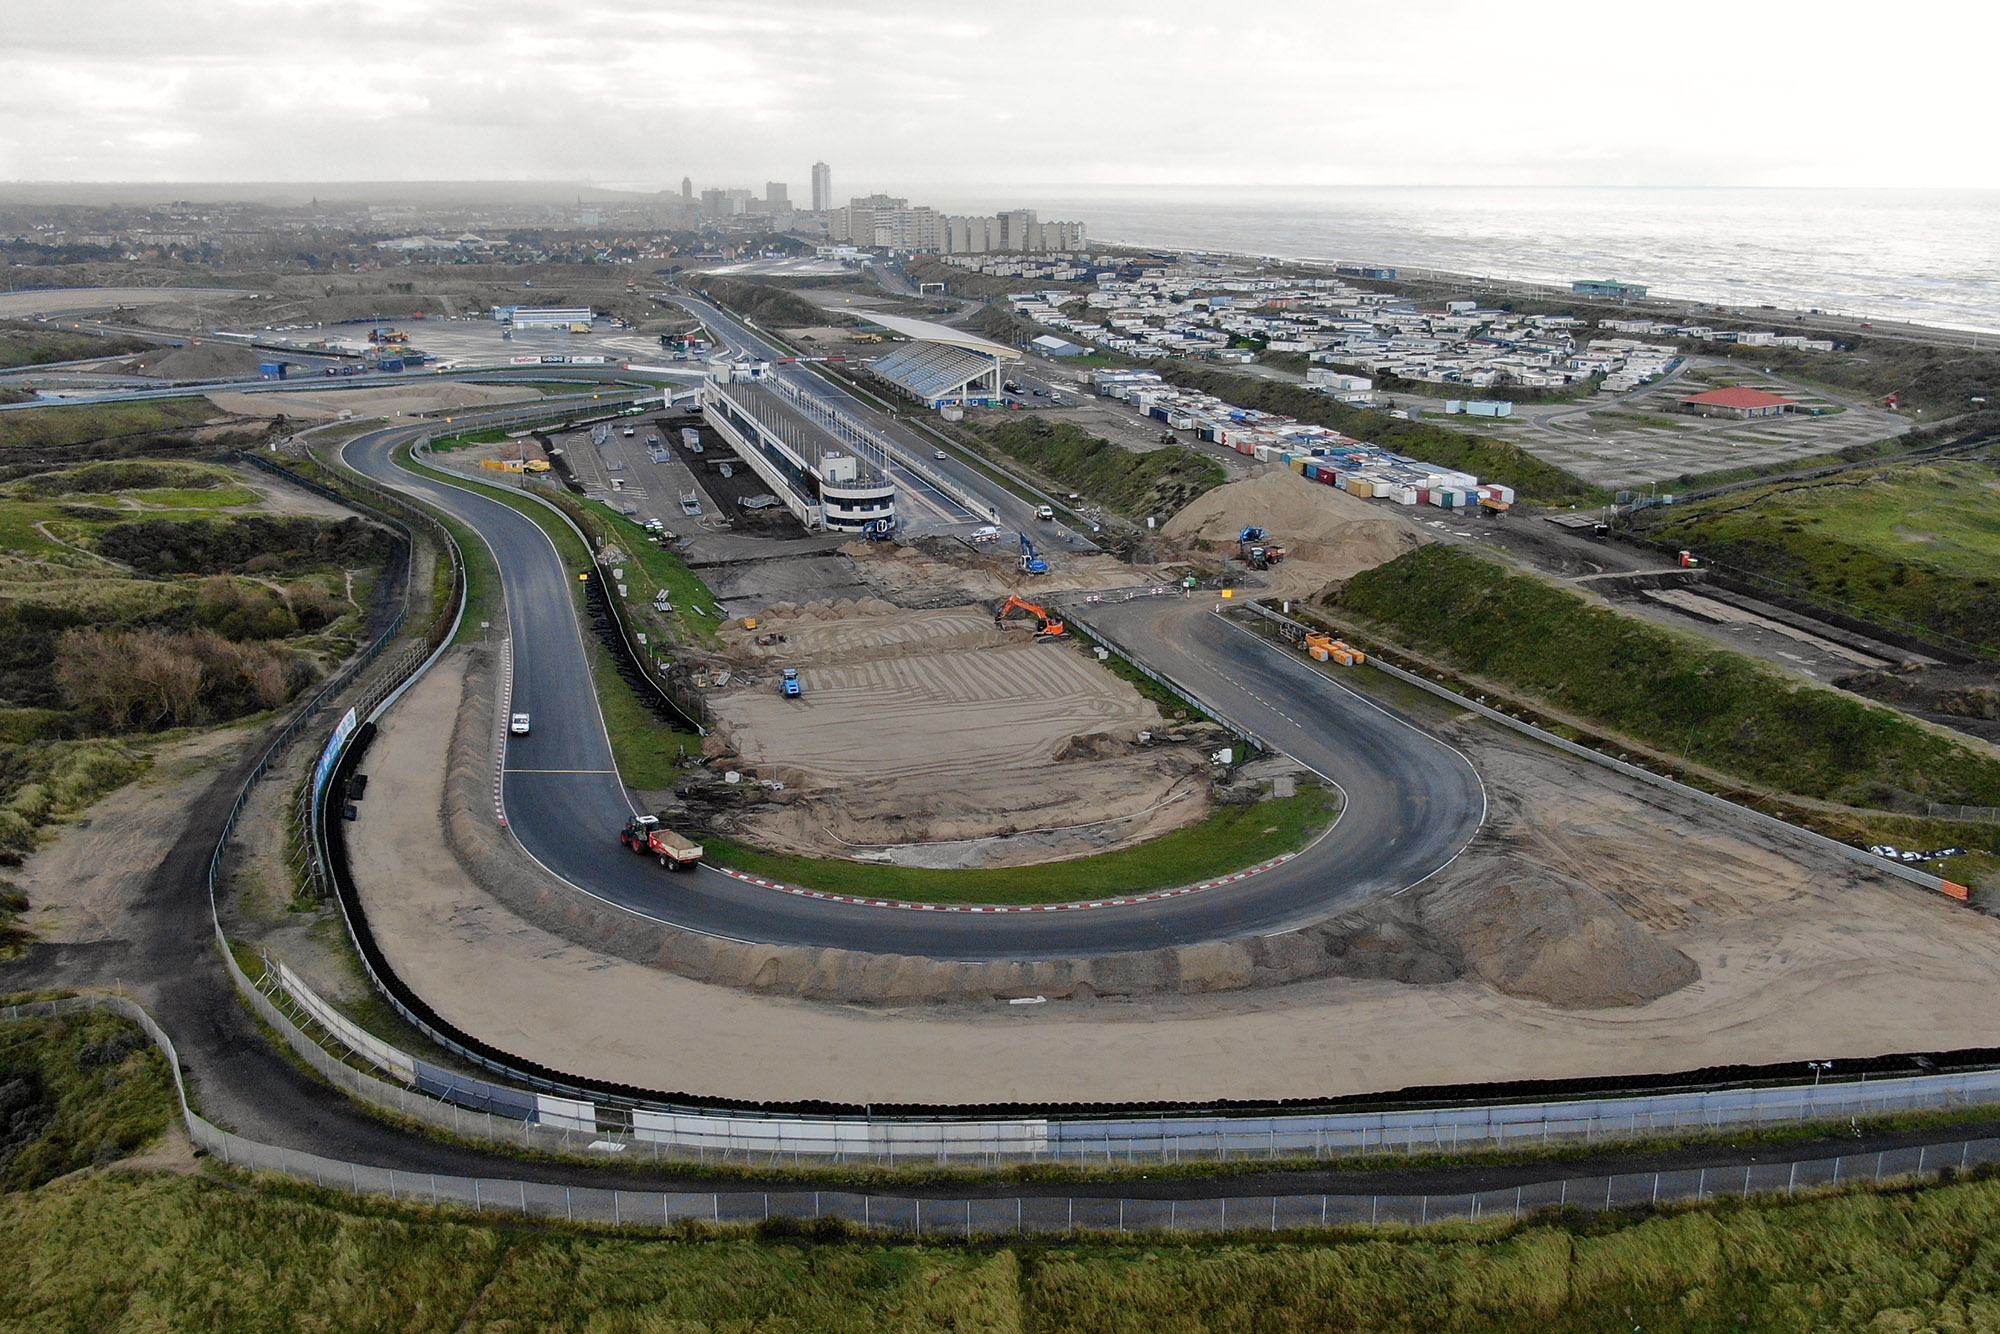 Construction work at Zandvoort as seen from Turn One